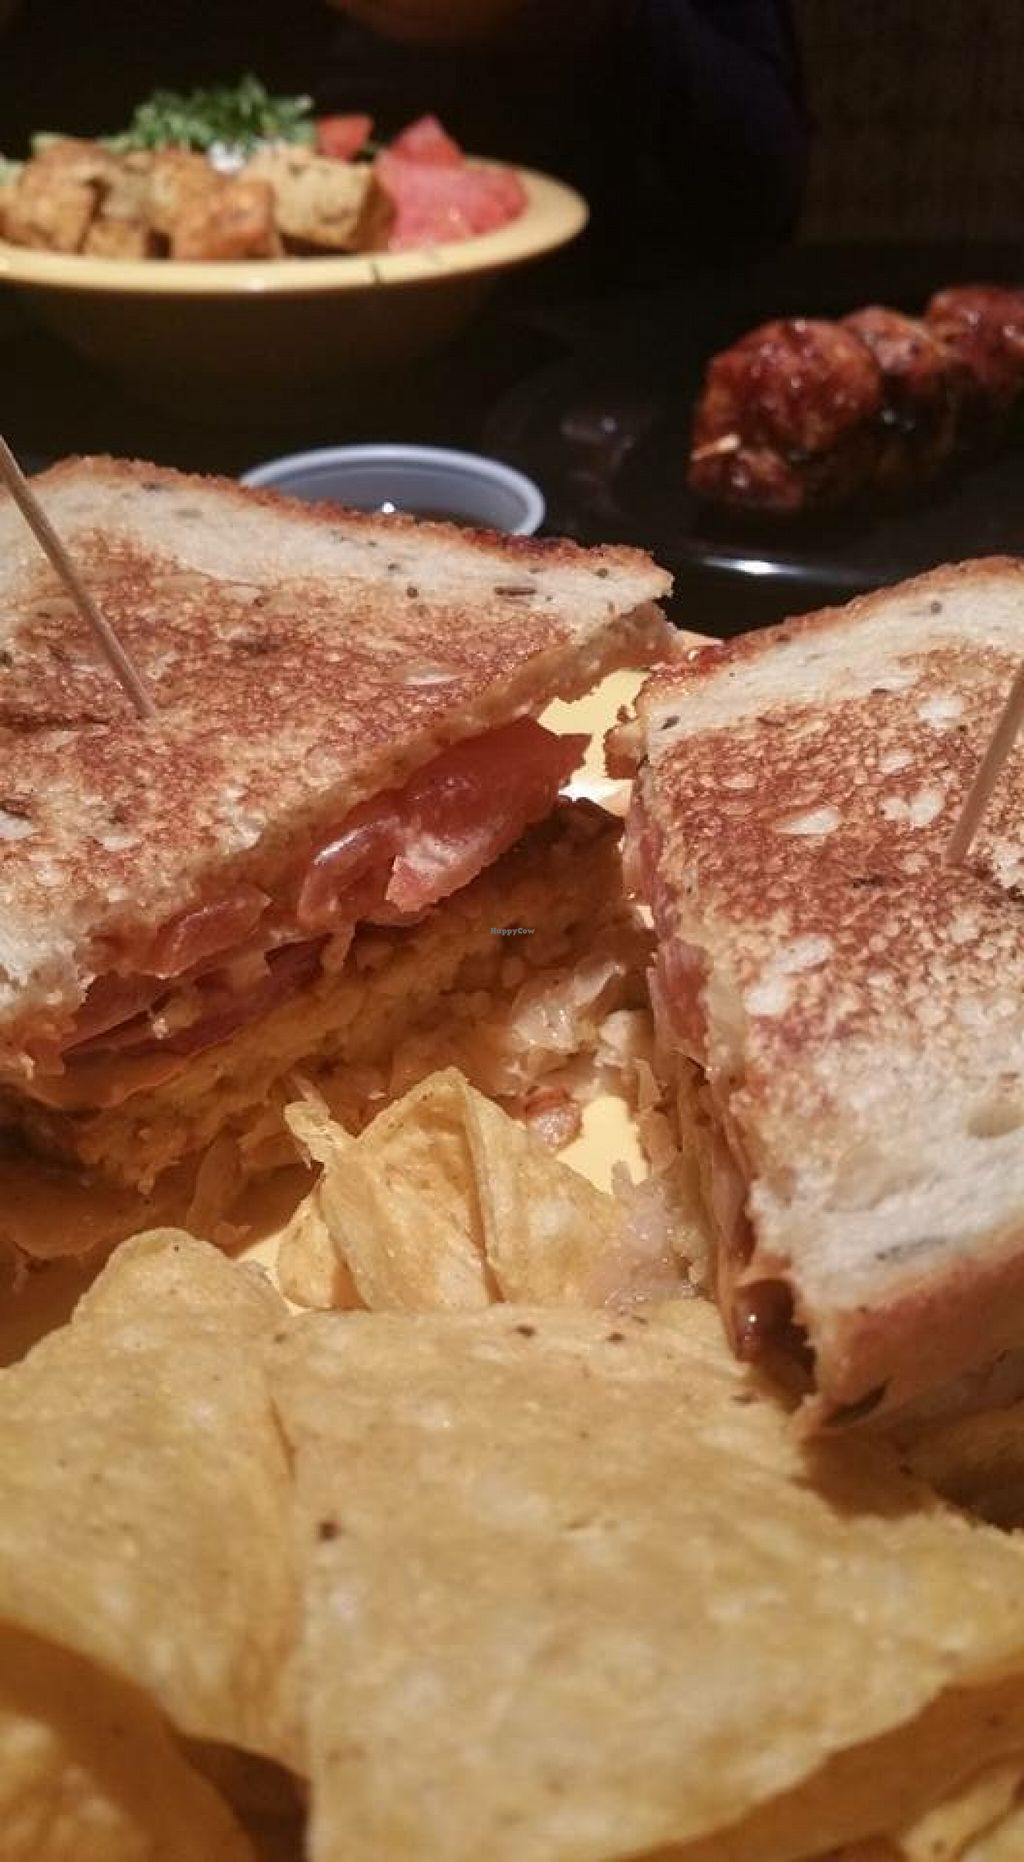 "Photo of Cafe Yumm  by <a href=""/members/profile/Arthousebill"">Arthousebill</a> <br/>Tempeh rueben <br/> April 2, 2016  - <a href='/contact/abuse/image/70215/142449'>Report</a>"